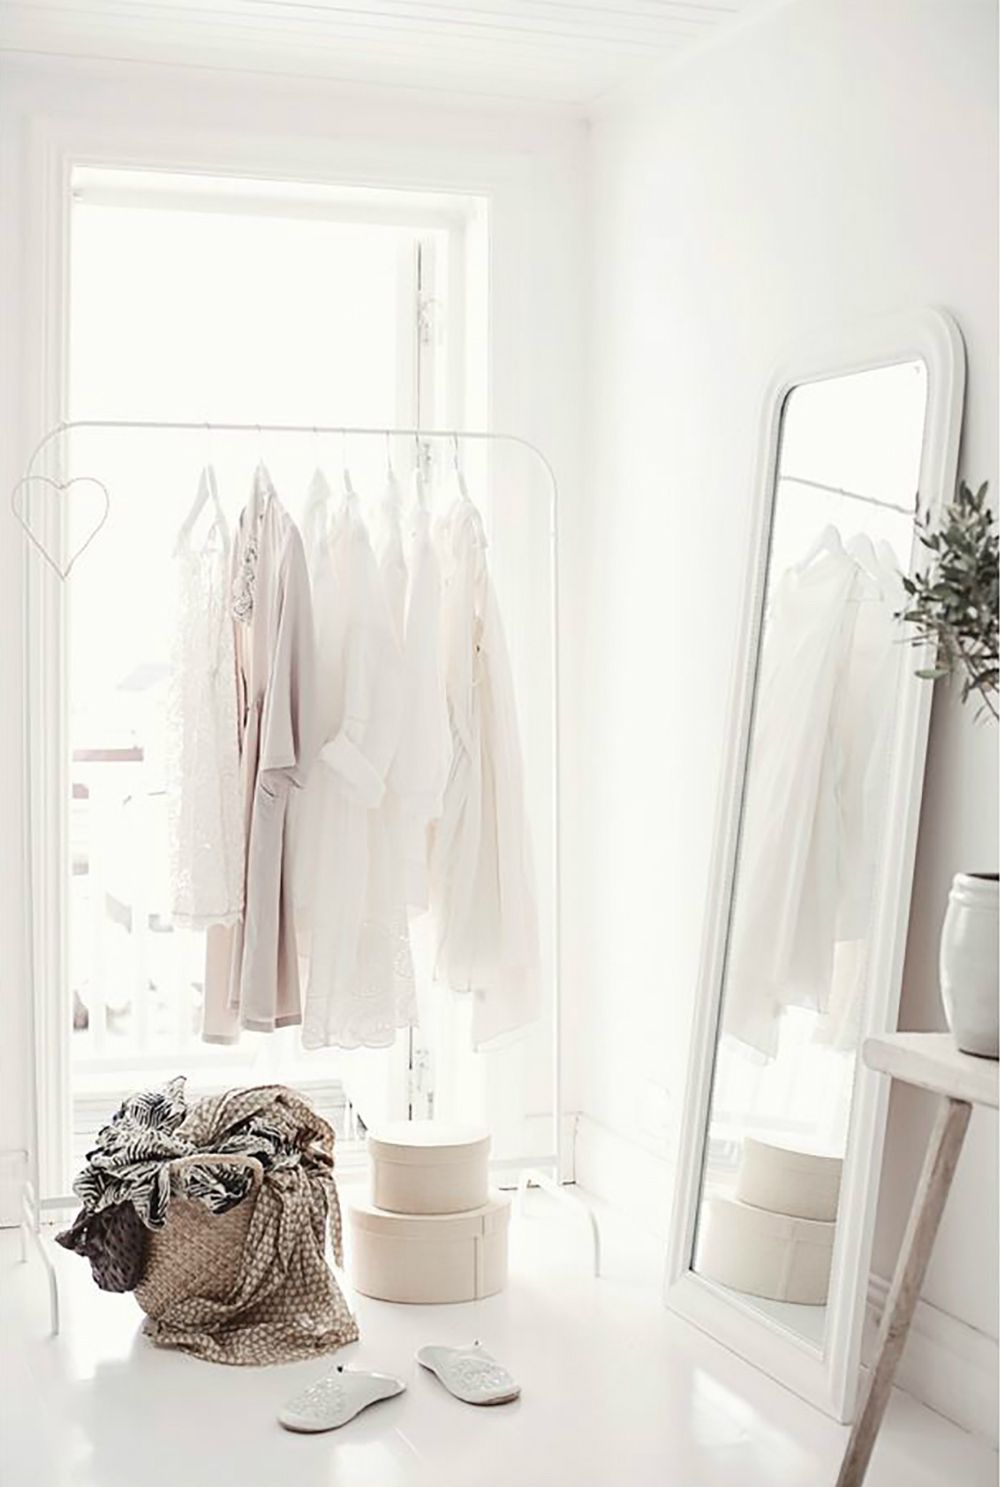 How To Spell Wardrobe - Wardrobe For Home